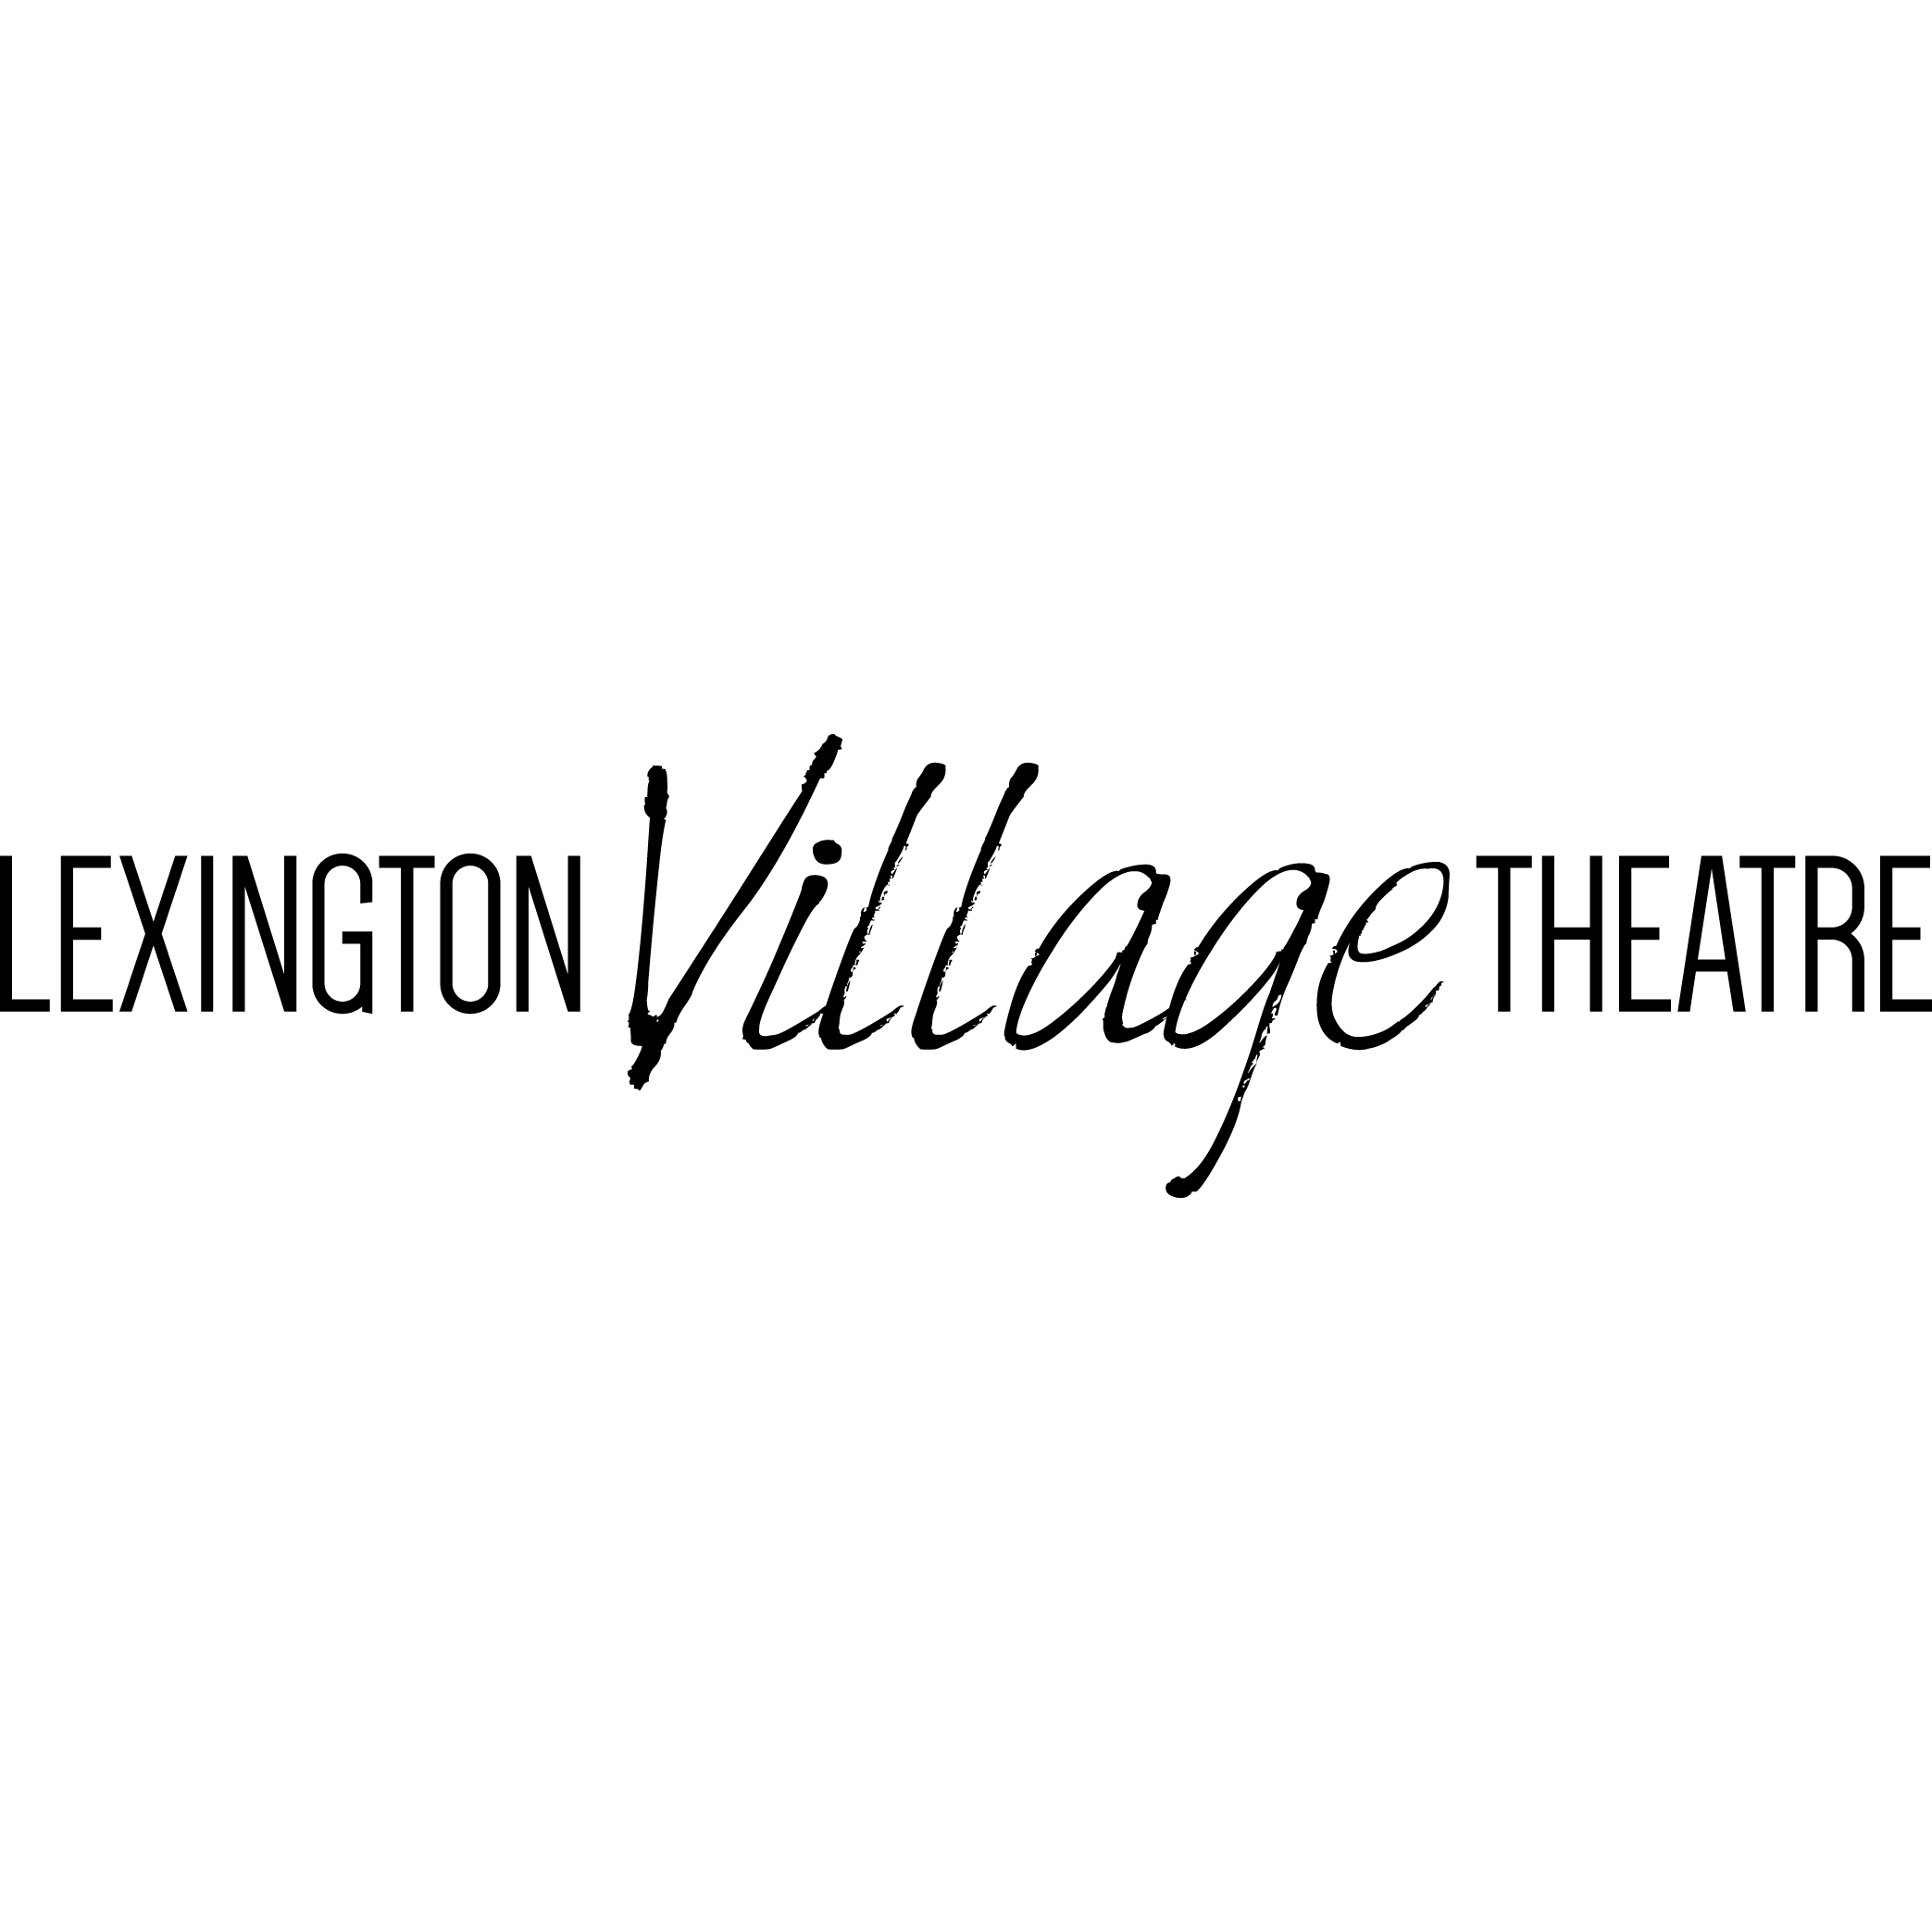 Lexington Village Theatre